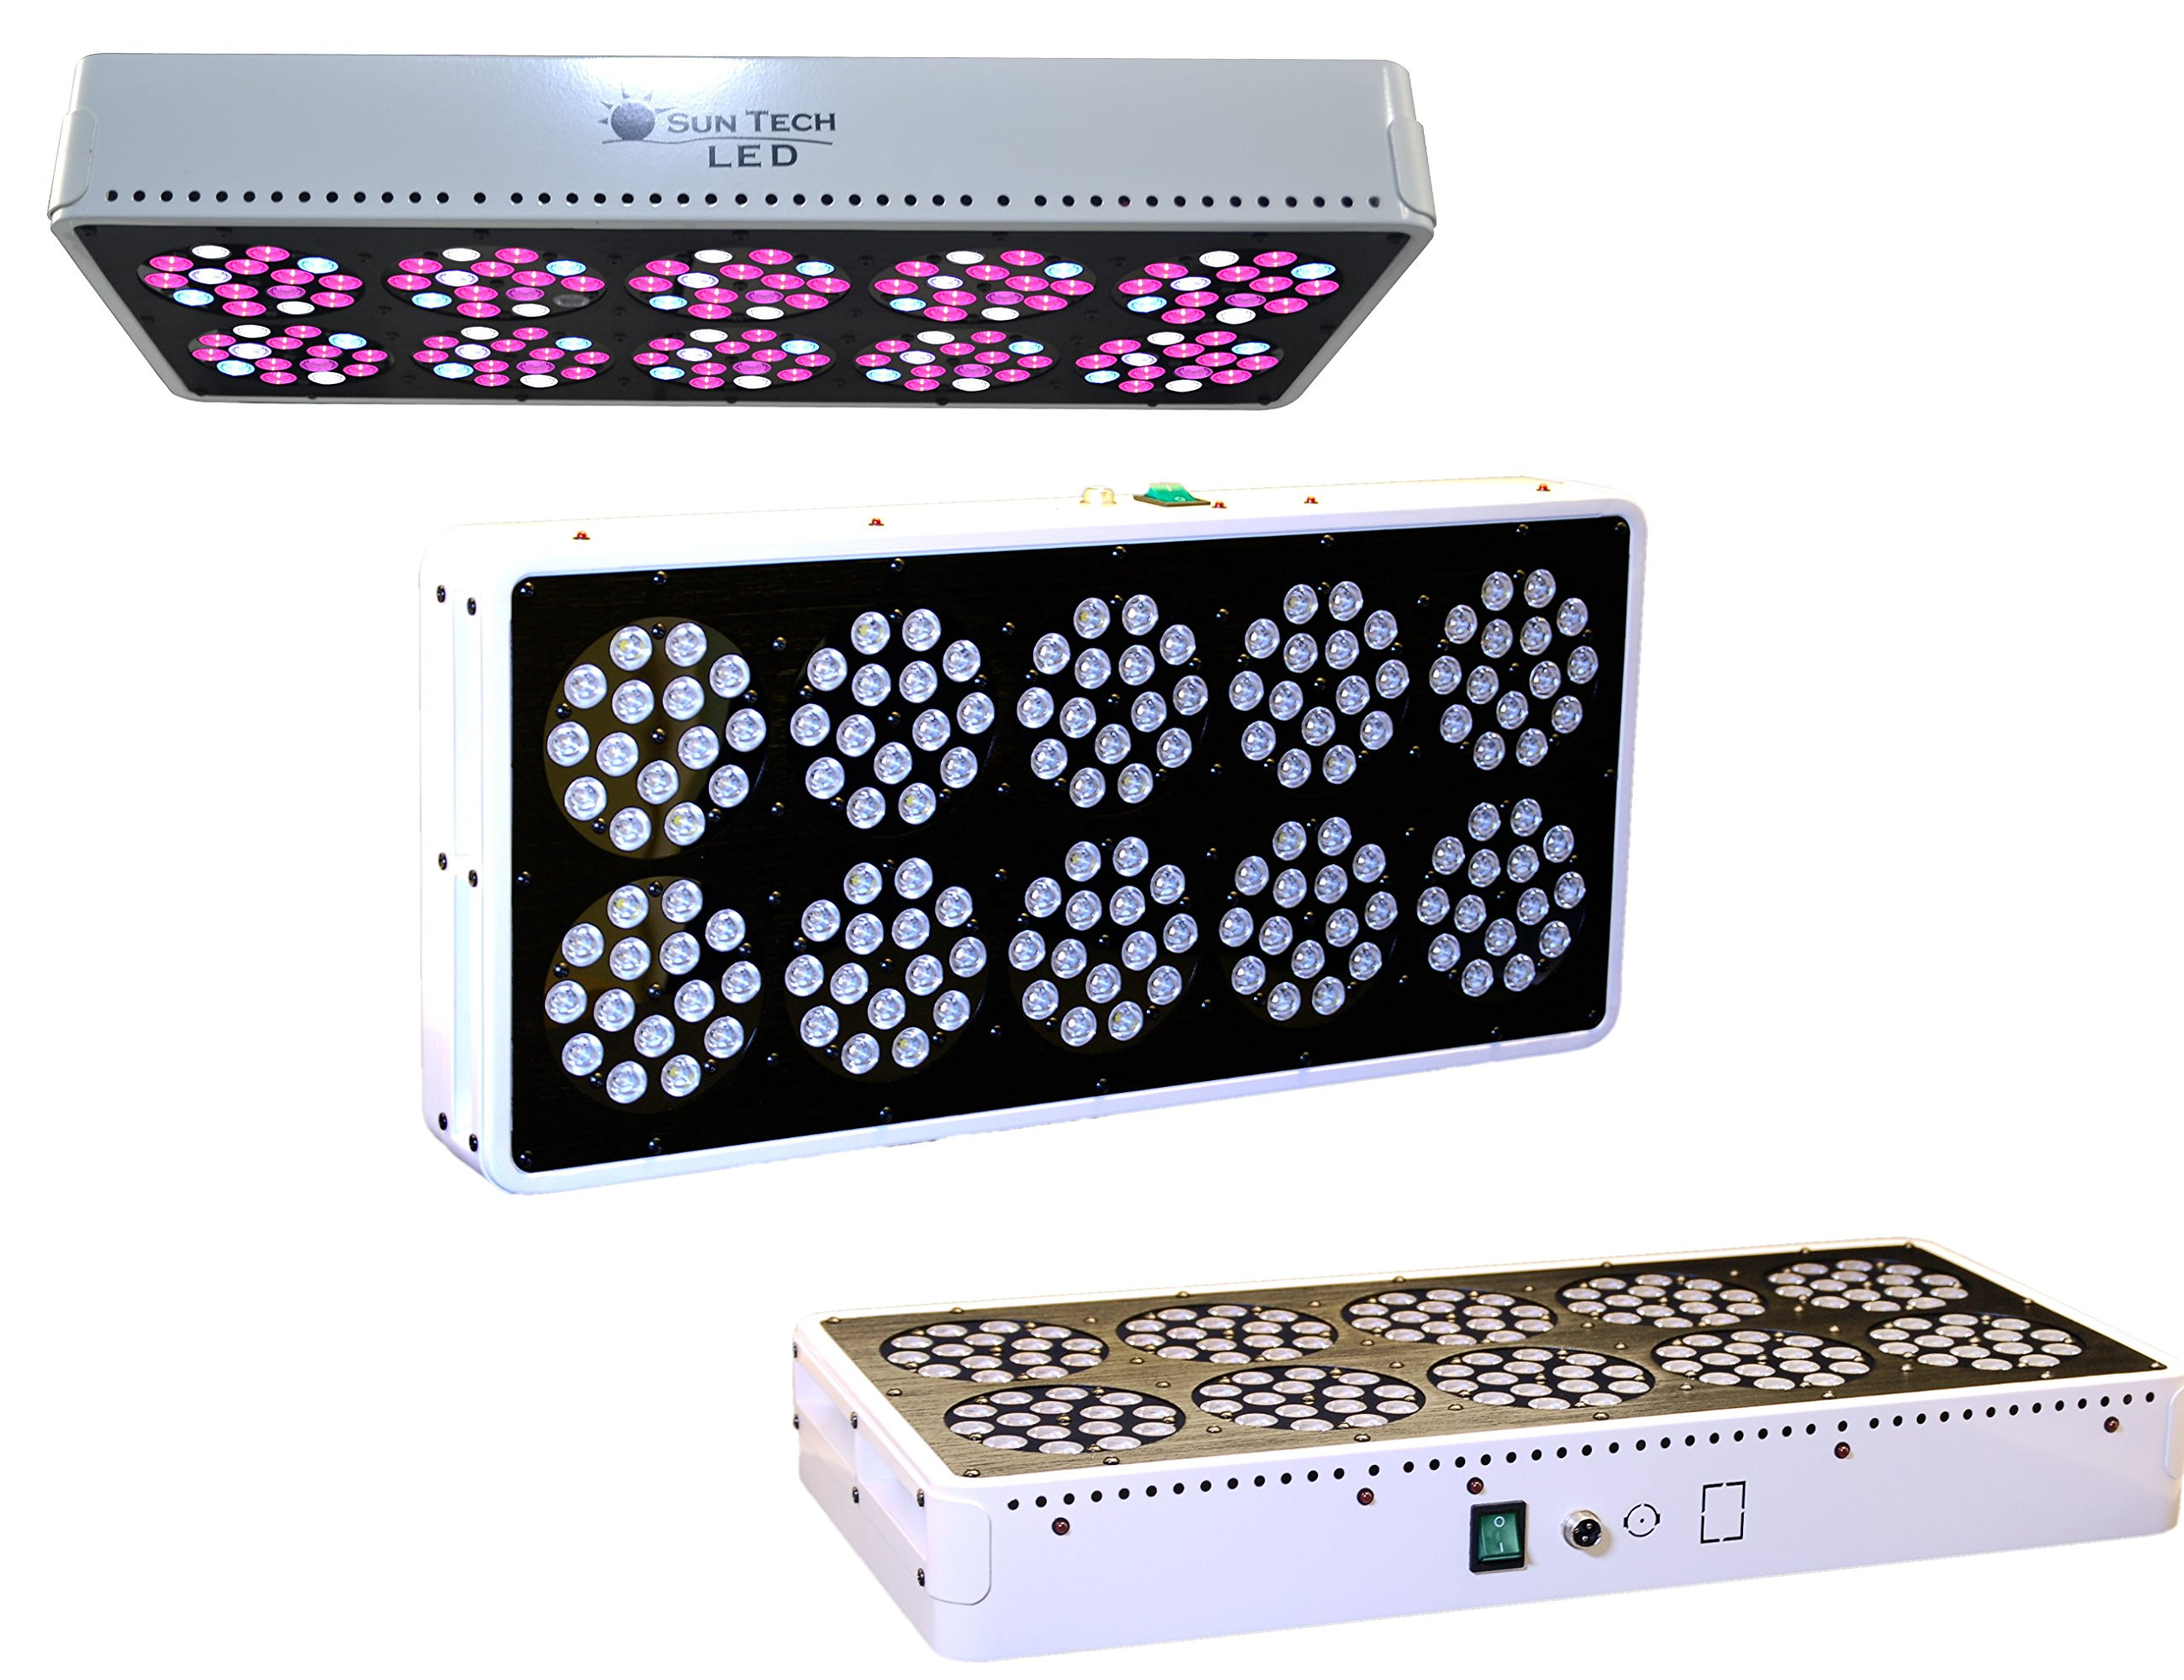 suntech led 360w led grow light with optimal spectrum with infrared ir and ultraviolet